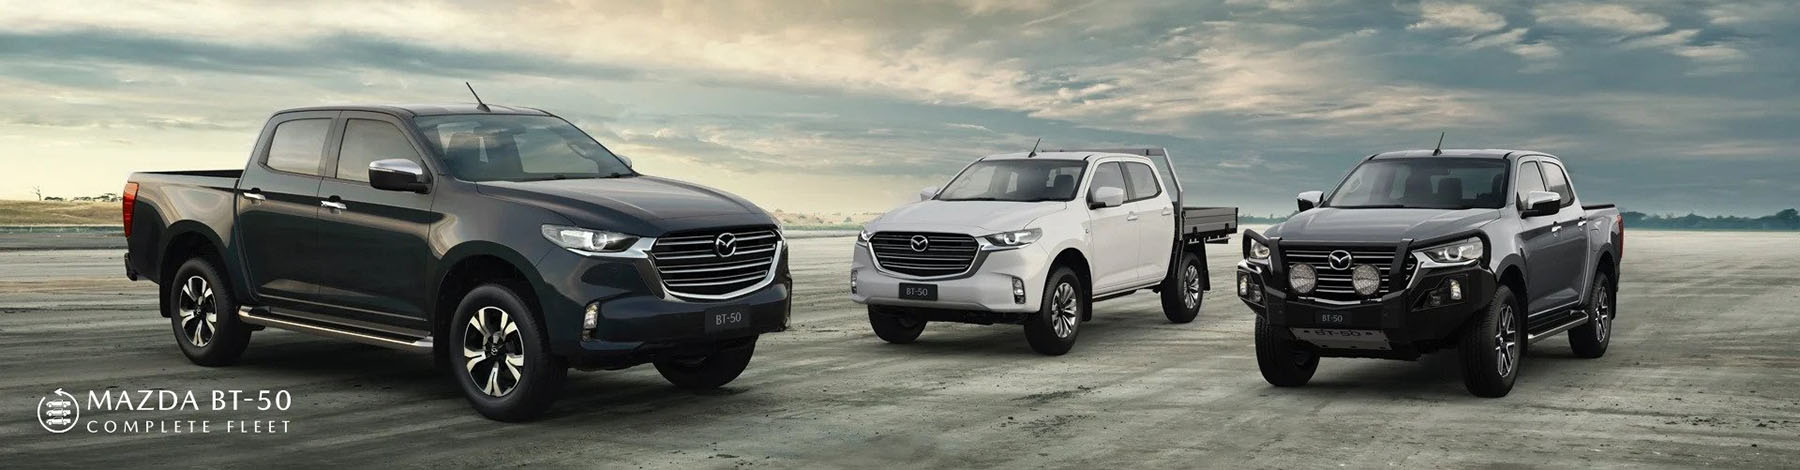 Mazda BT-50 Complete Fleet Program